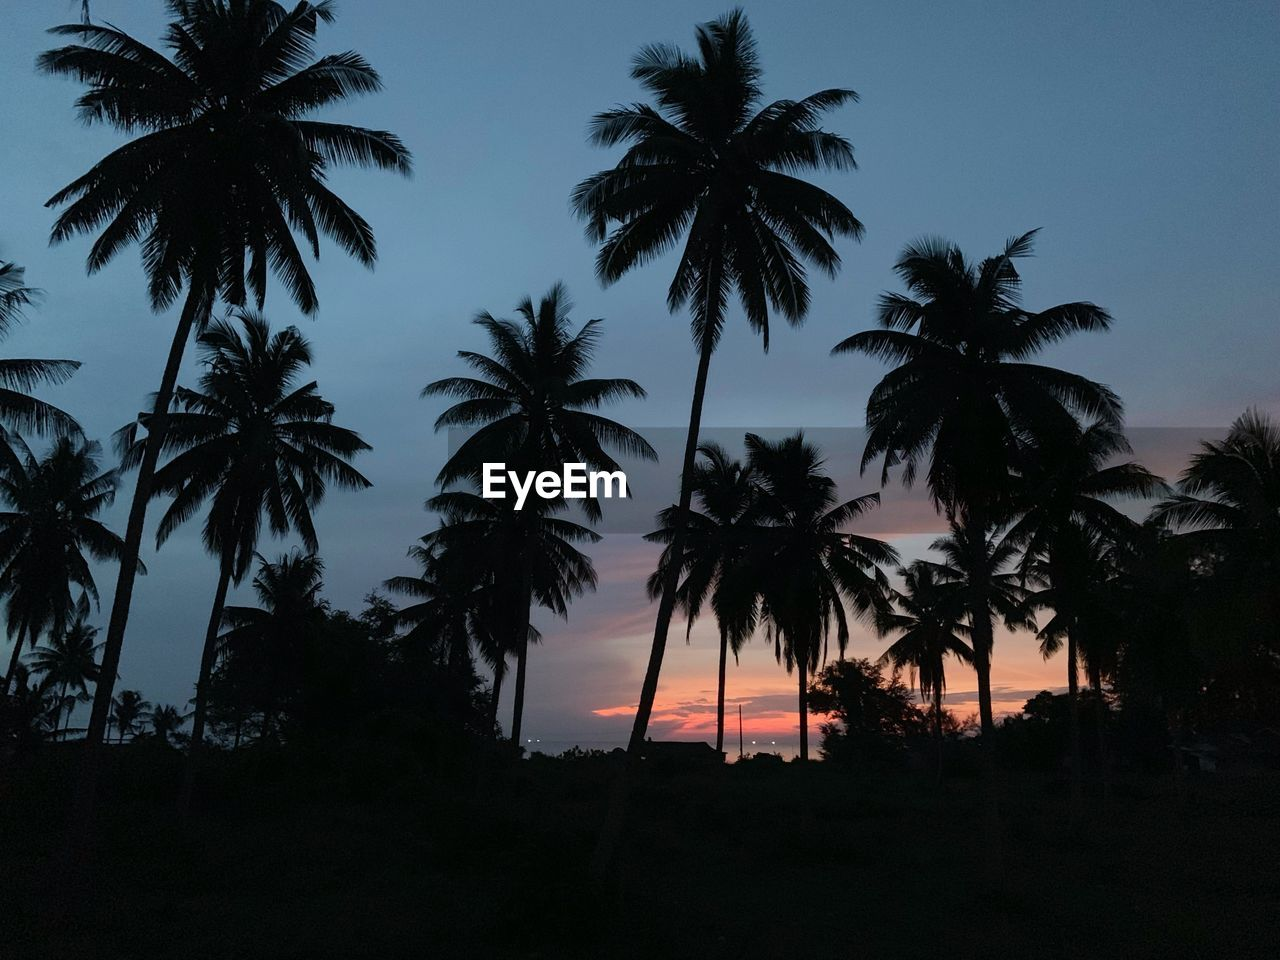 tree, silhouette, palm tree, tropical climate, sky, plant, sunset, nature, no people, tranquility, beauty in nature, tranquil scene, growth, scenics - nature, outdoors, coconut palm tree, clear sky, low angle view, night, land, dark